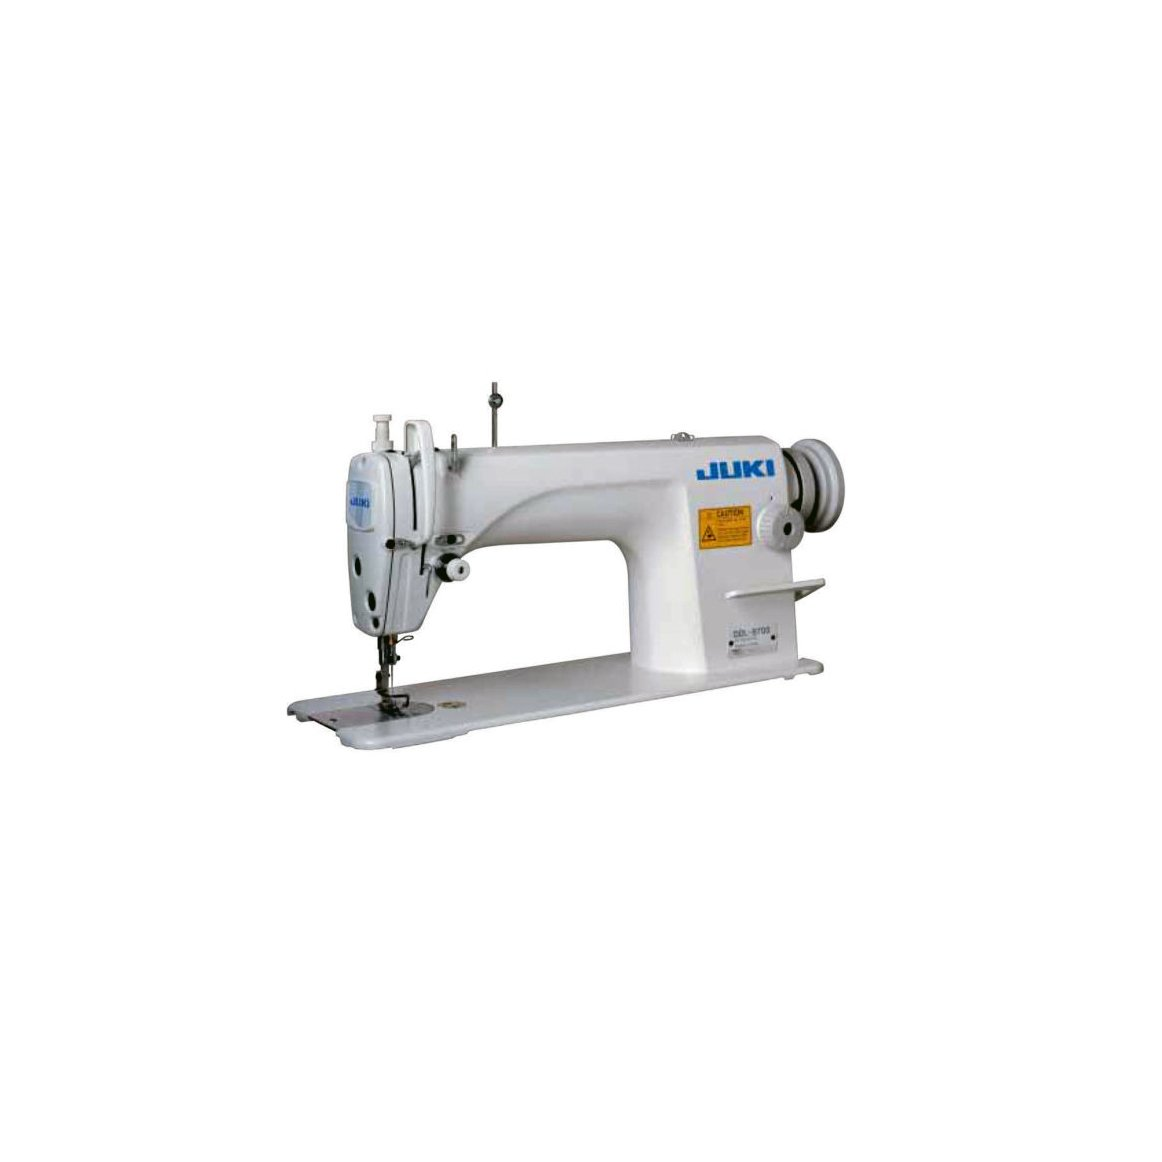 Juki Ddl 8700 Series Single Needle Lockstitch